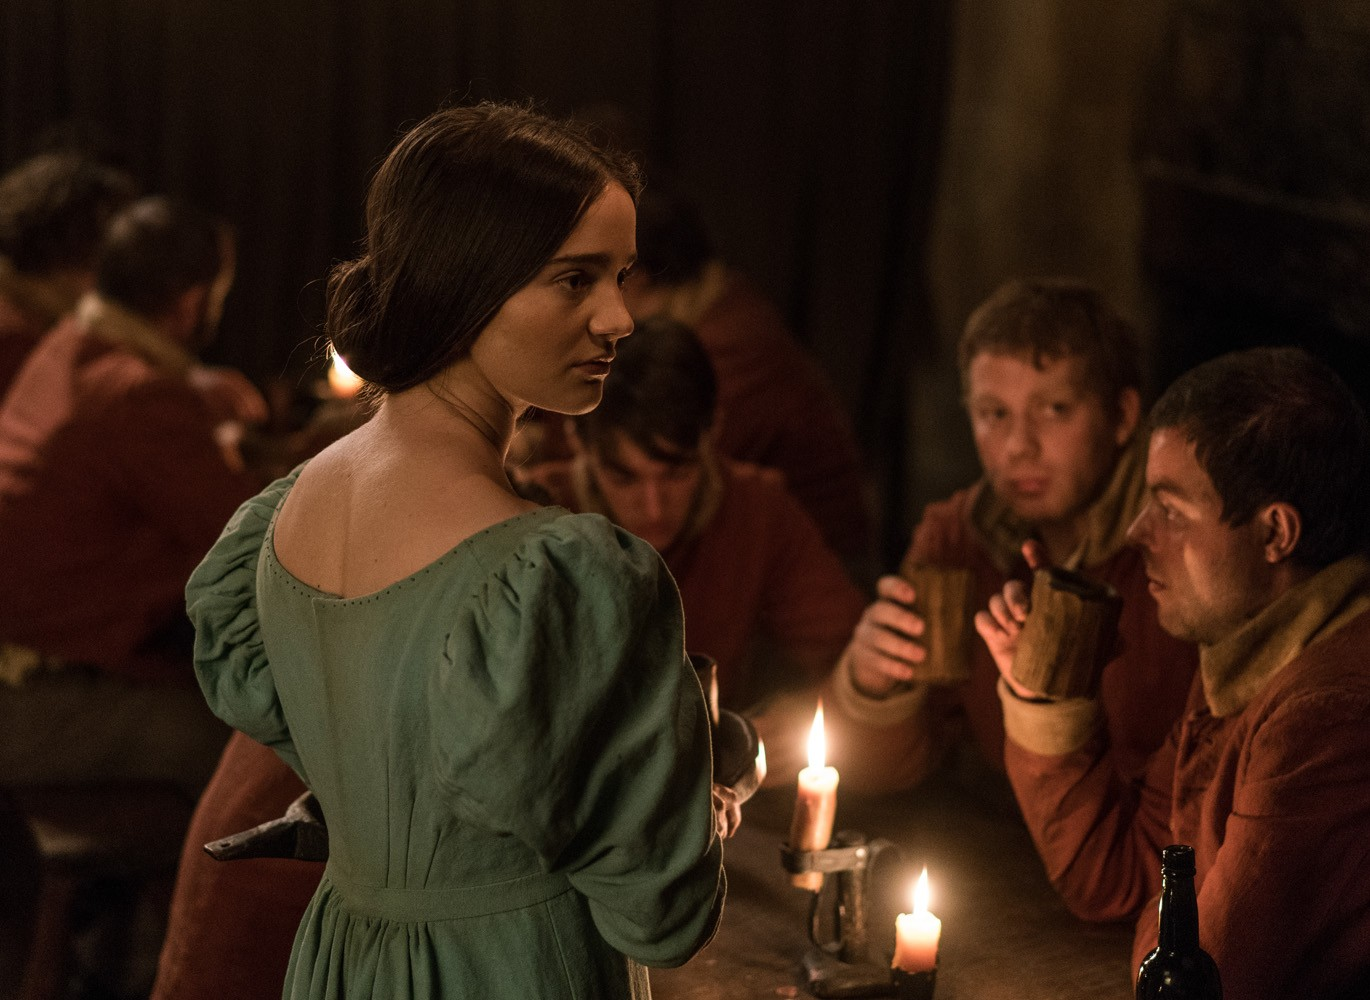 The Nightingale is a harrowing yet real tale